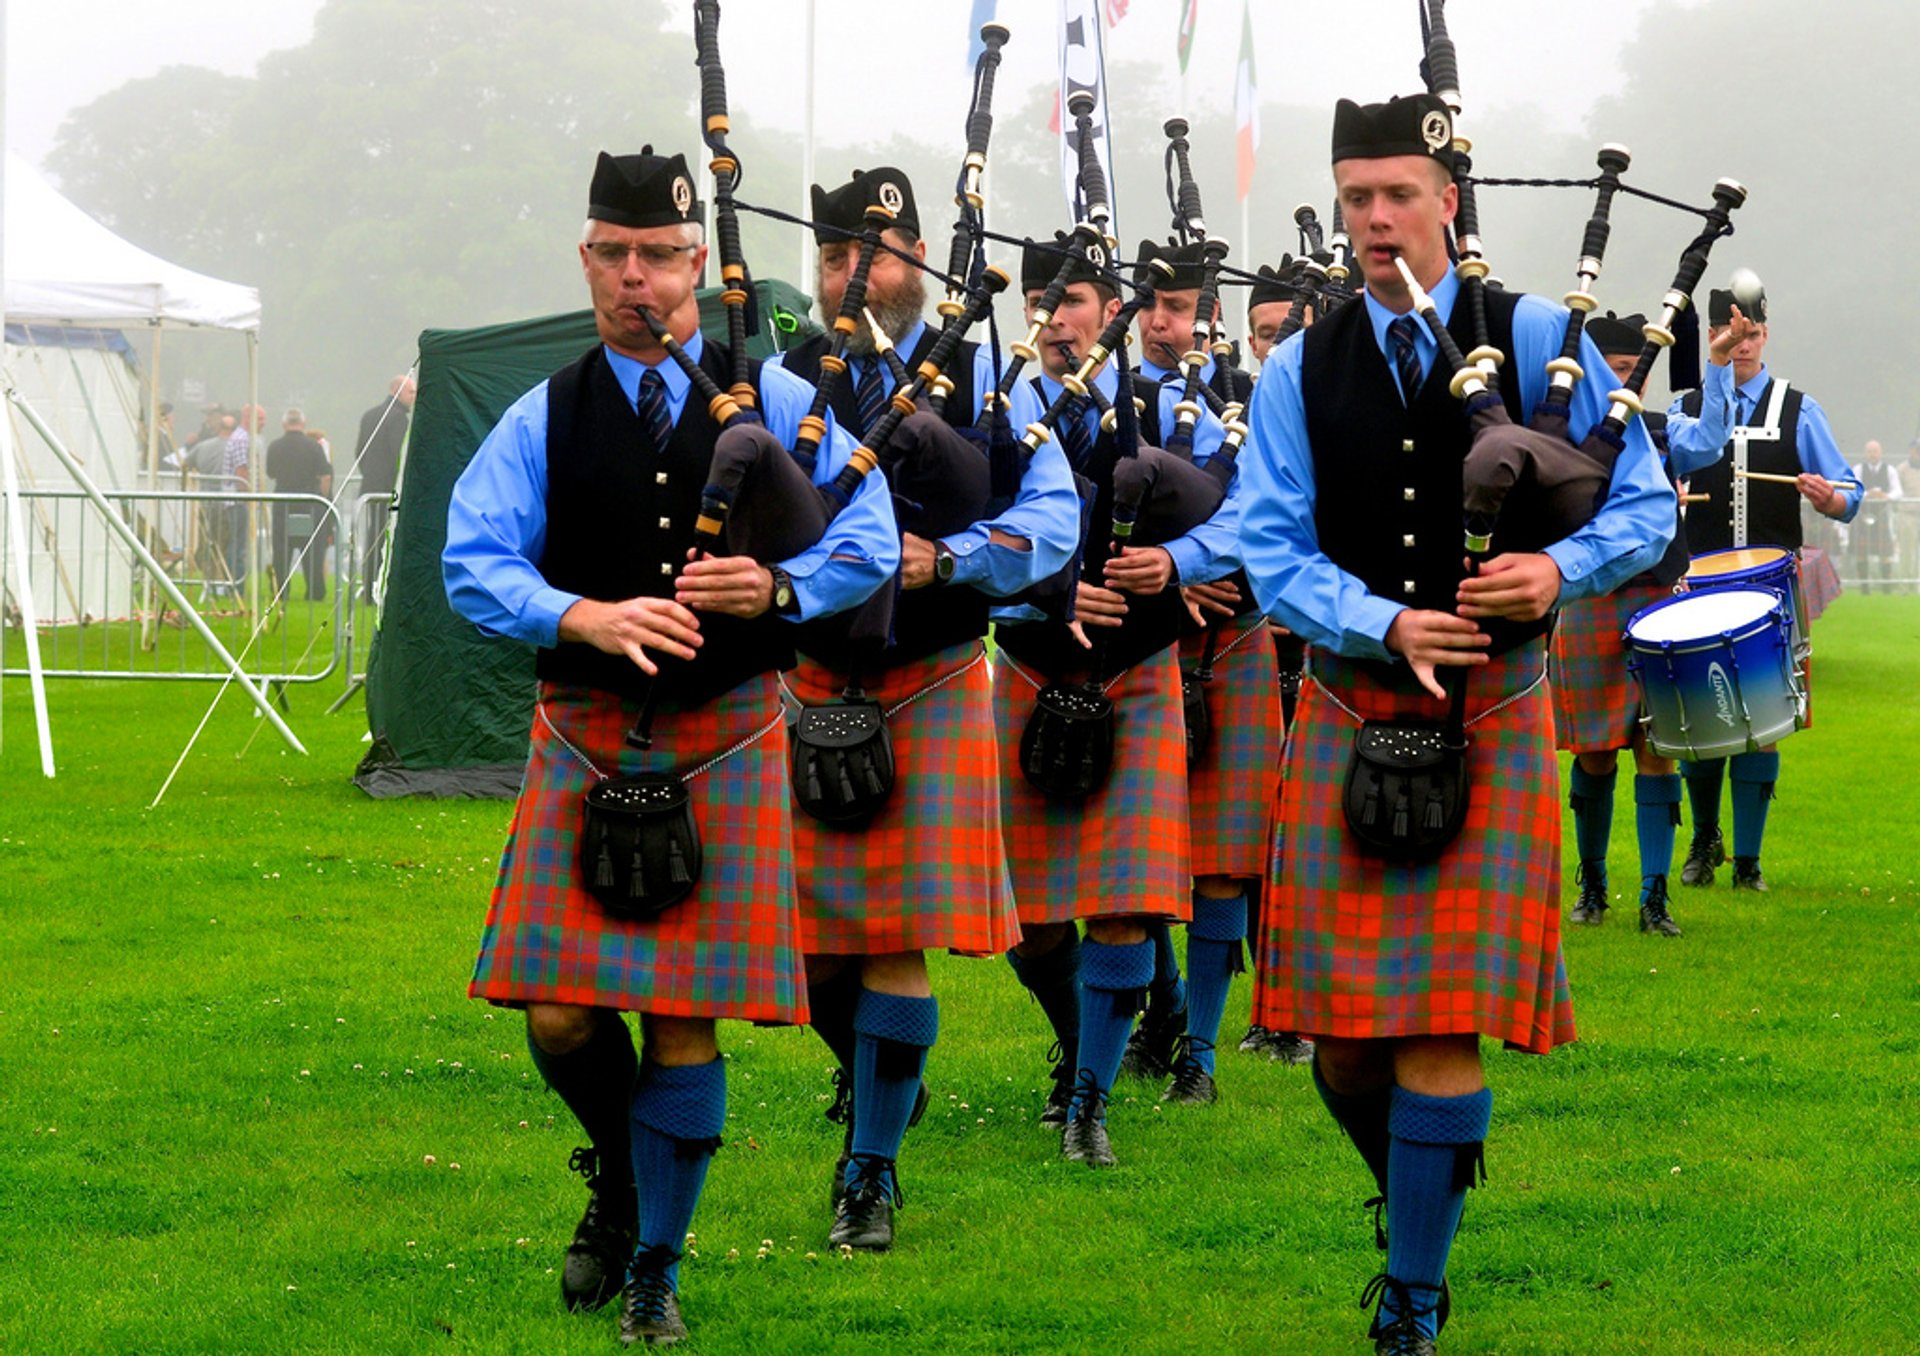 Best time for North Berwick International Highland Games in Edinburgh 2020